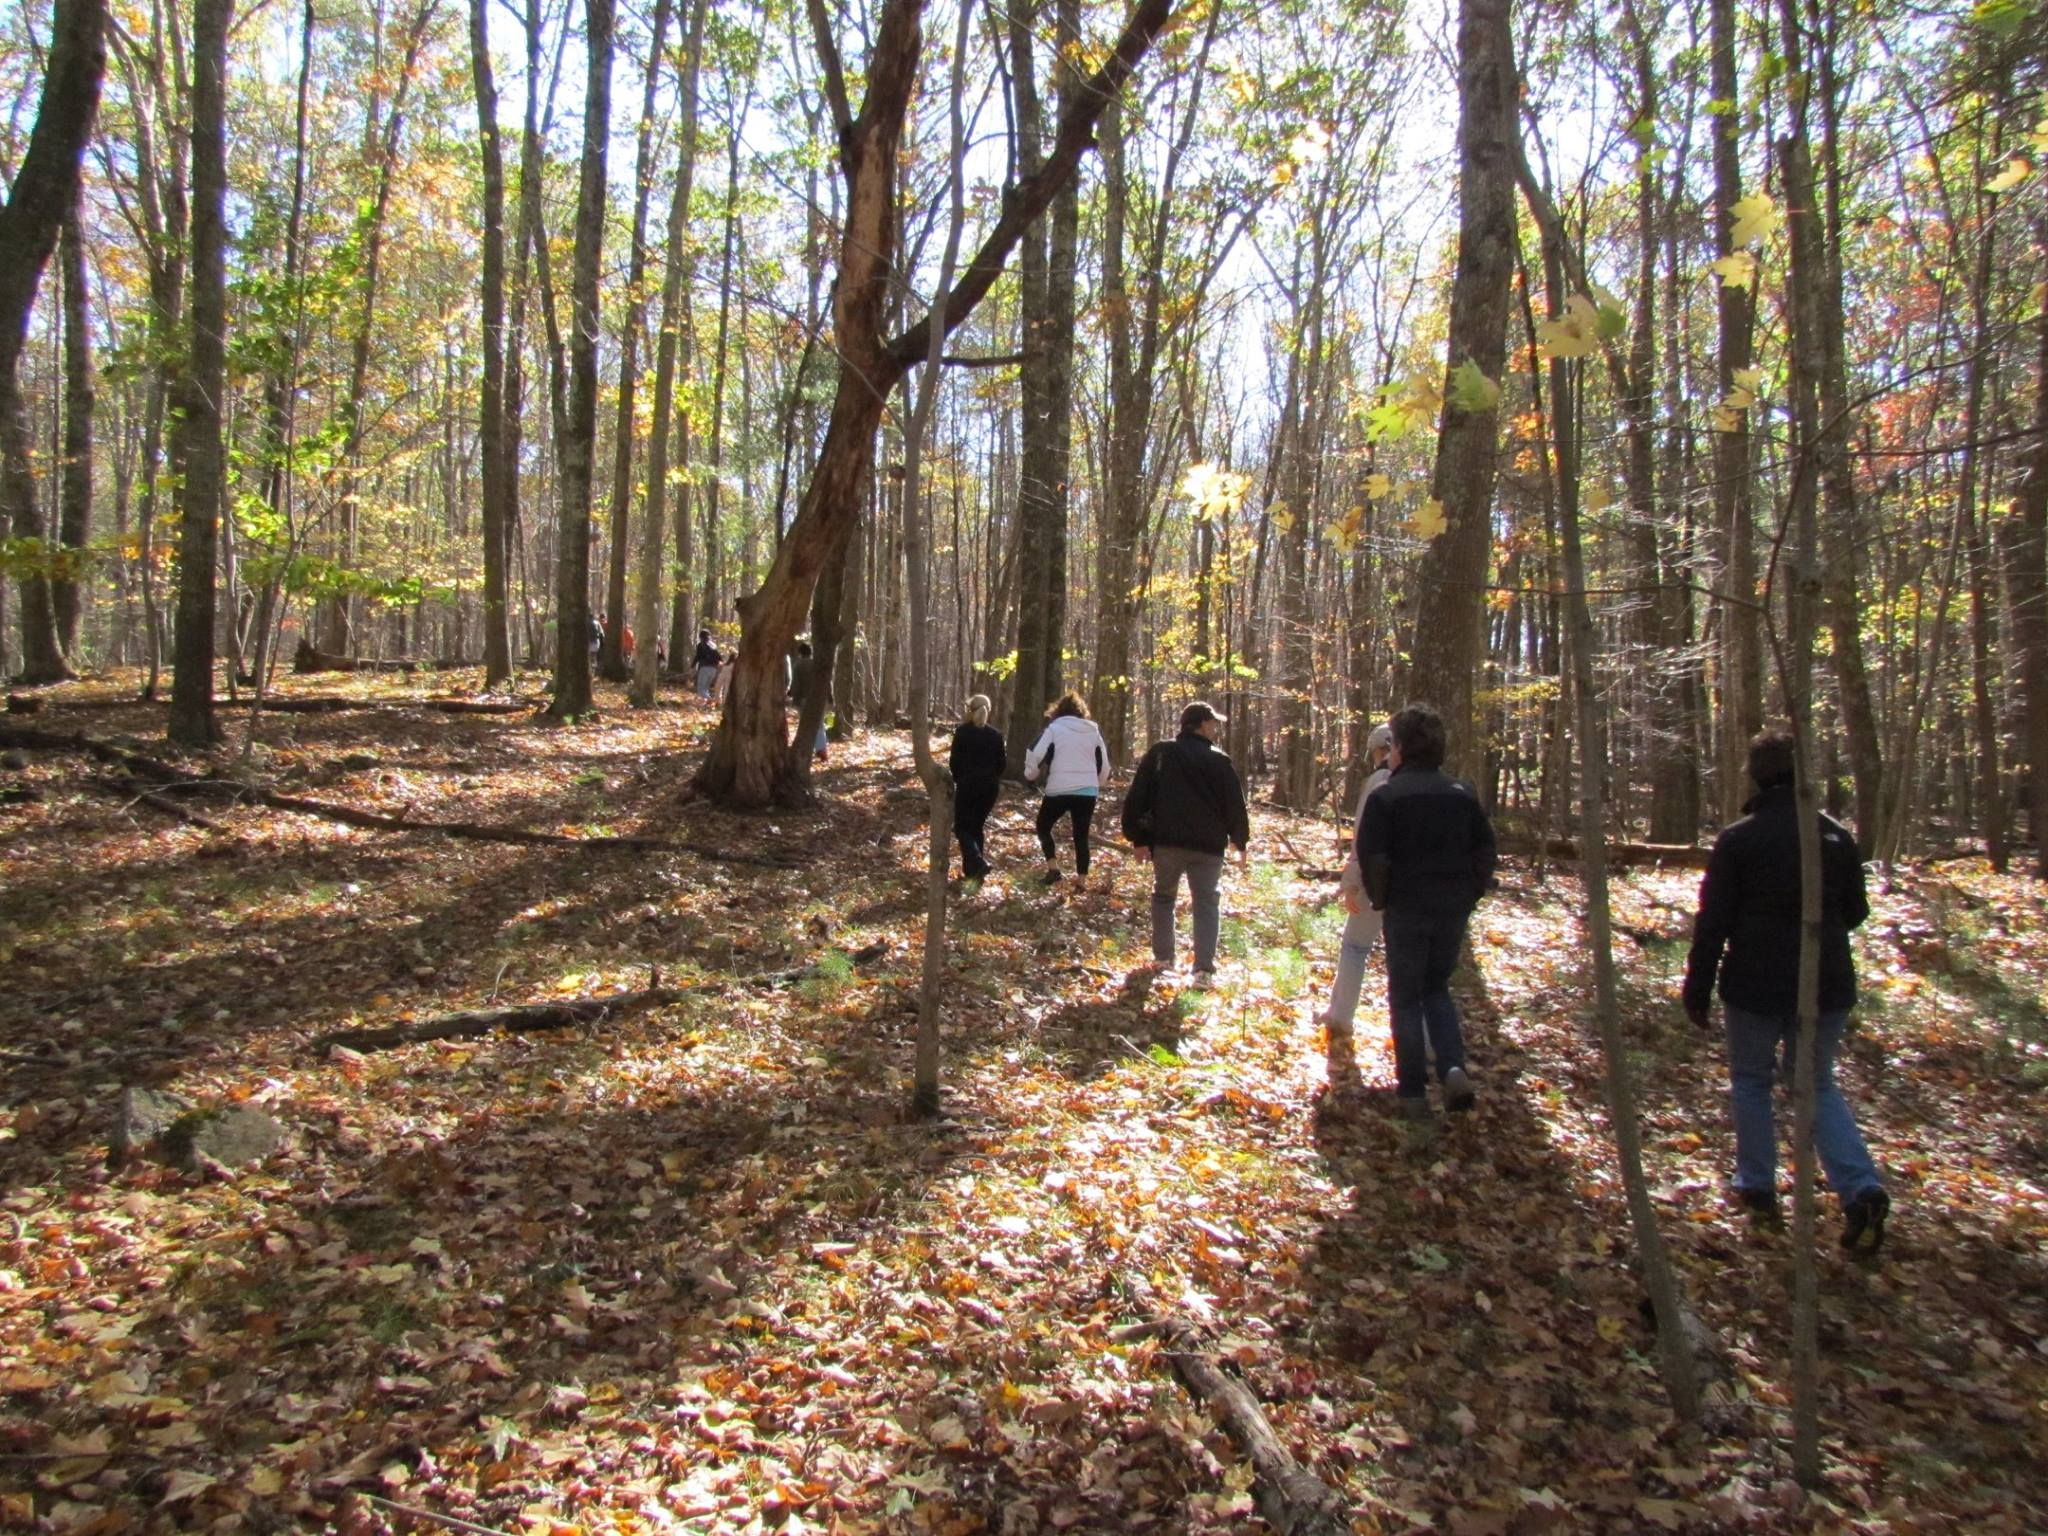 Hiking along the new trails at Langhammer.  Guided hike led by Ashford Conservation Commission on Oct 23 2016. Photo Credit Arlene Avery. https://plus.google.com/photos/+GwenHaaland/albums/5530271929637834257